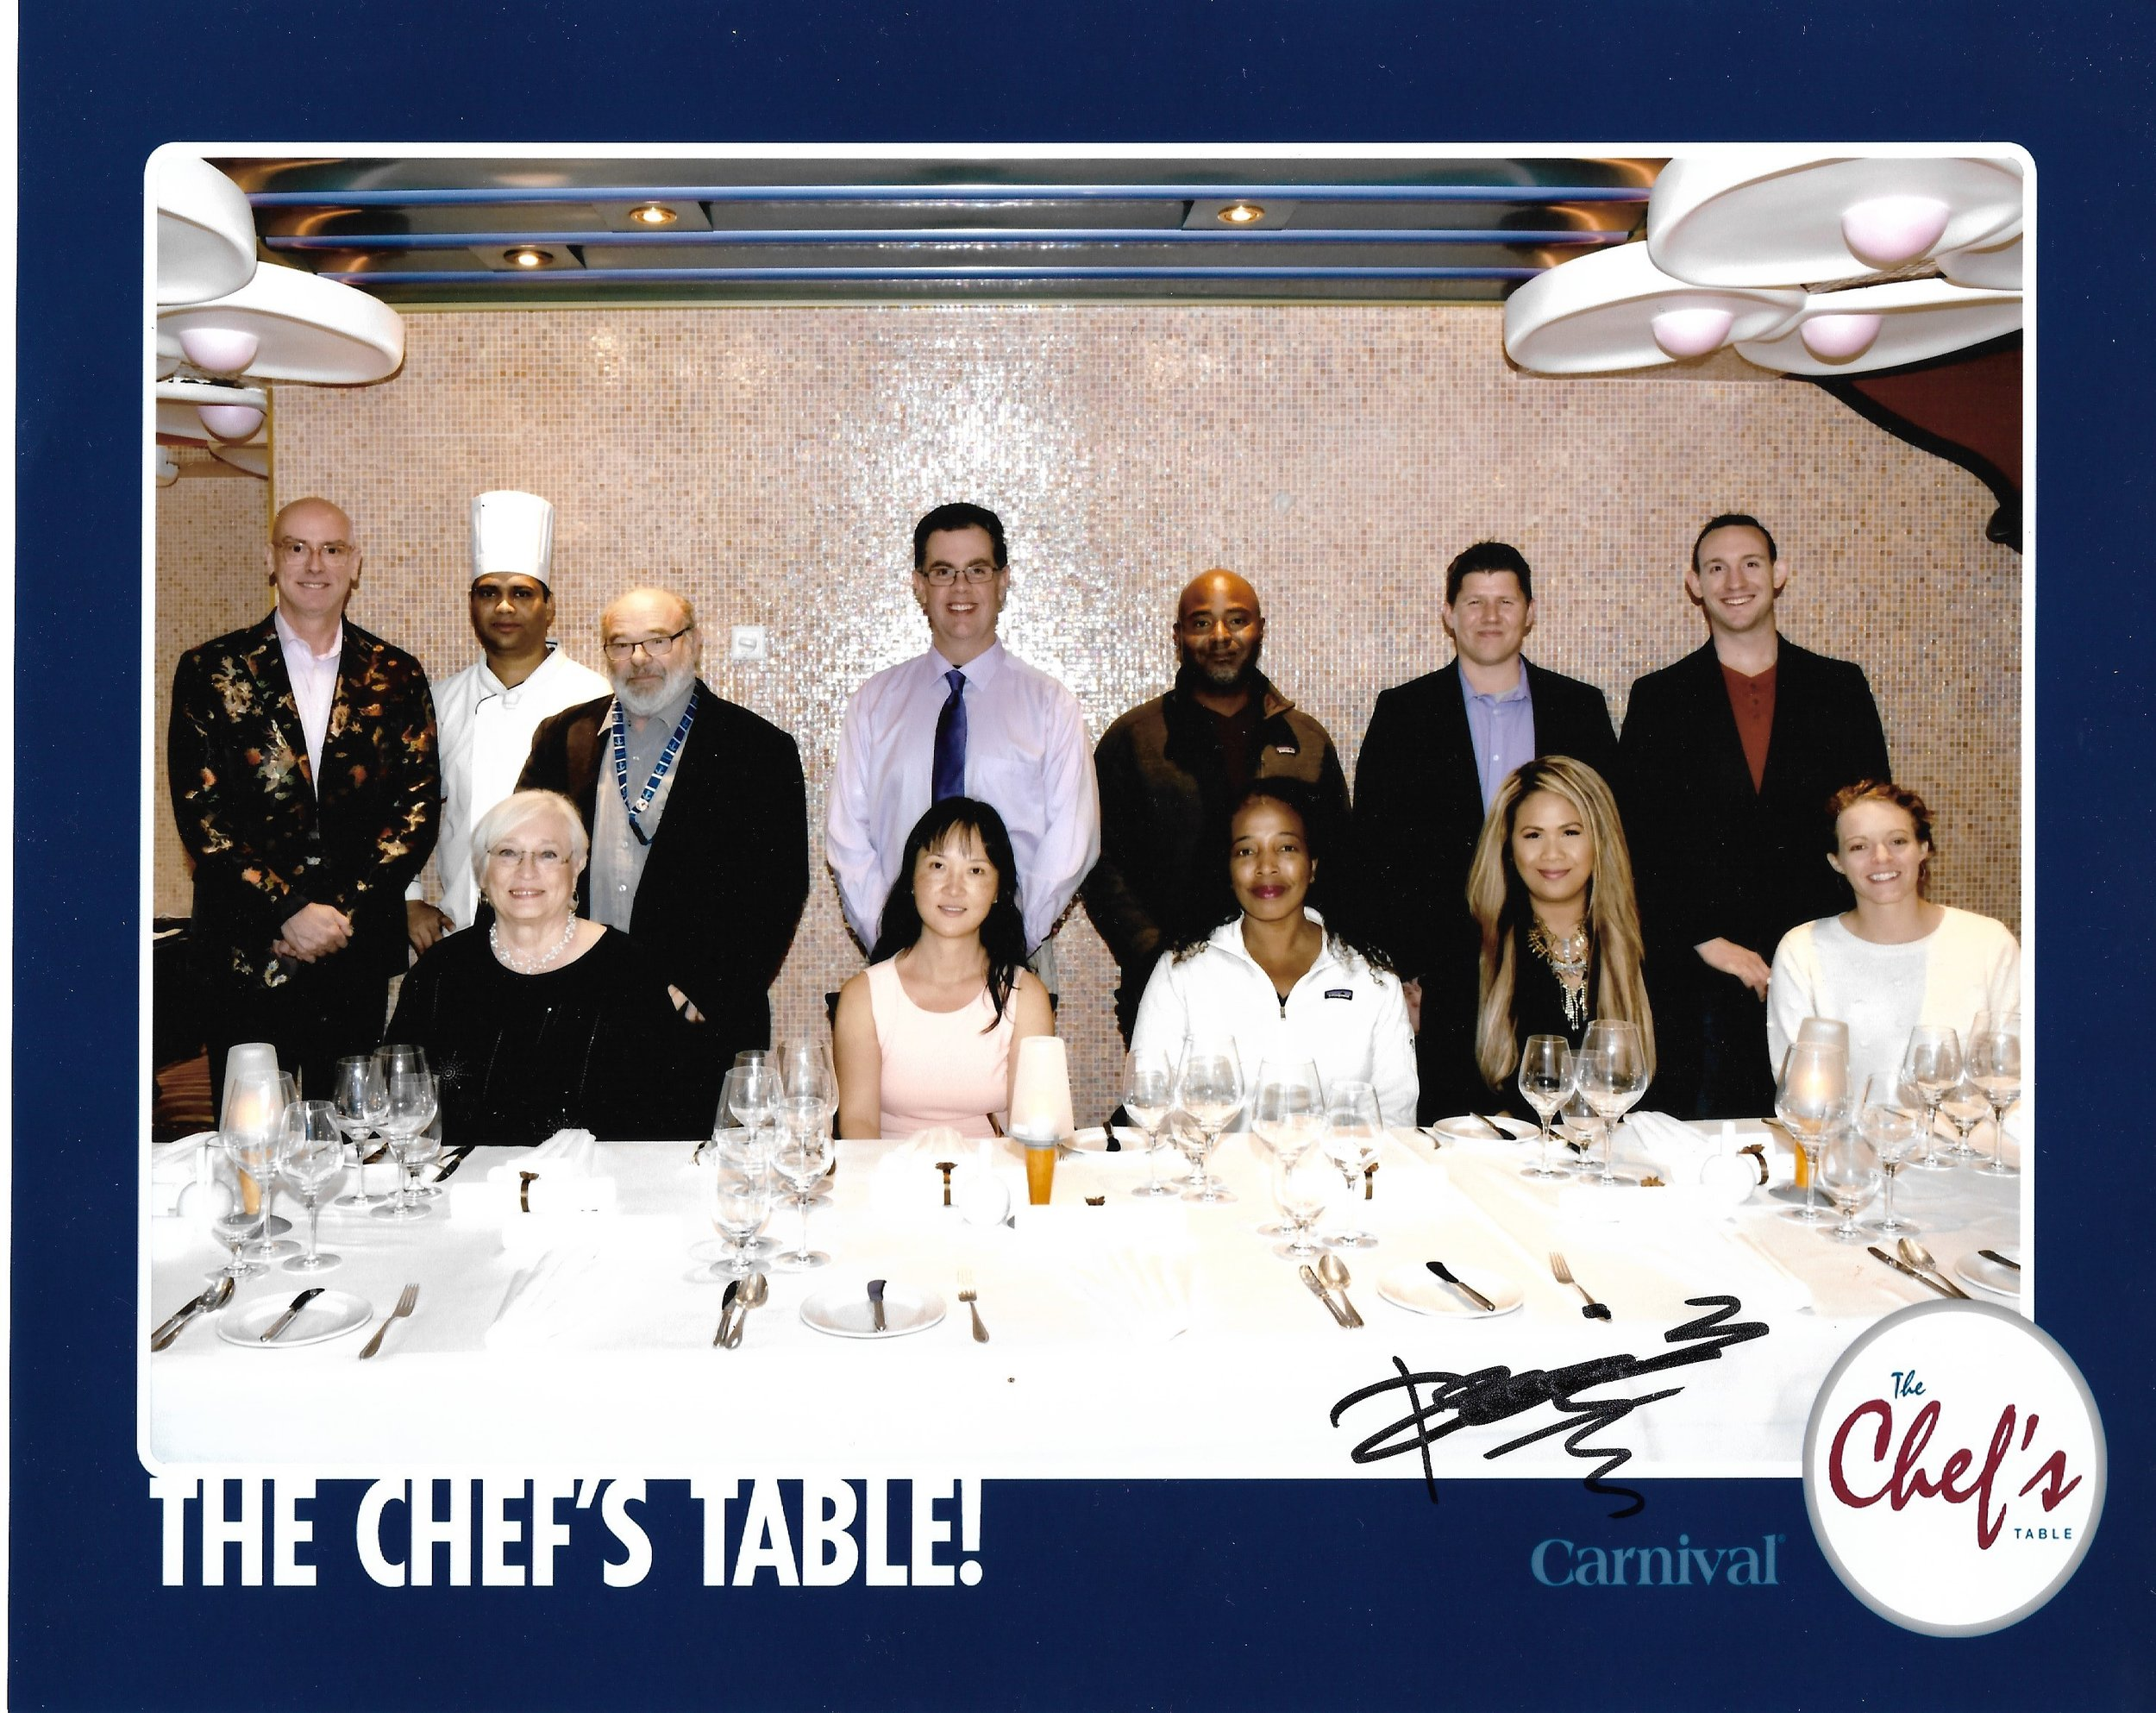 Chef's Table experience on the Carnival Splendor. Complimentary photo provided by Carnival Splendor.